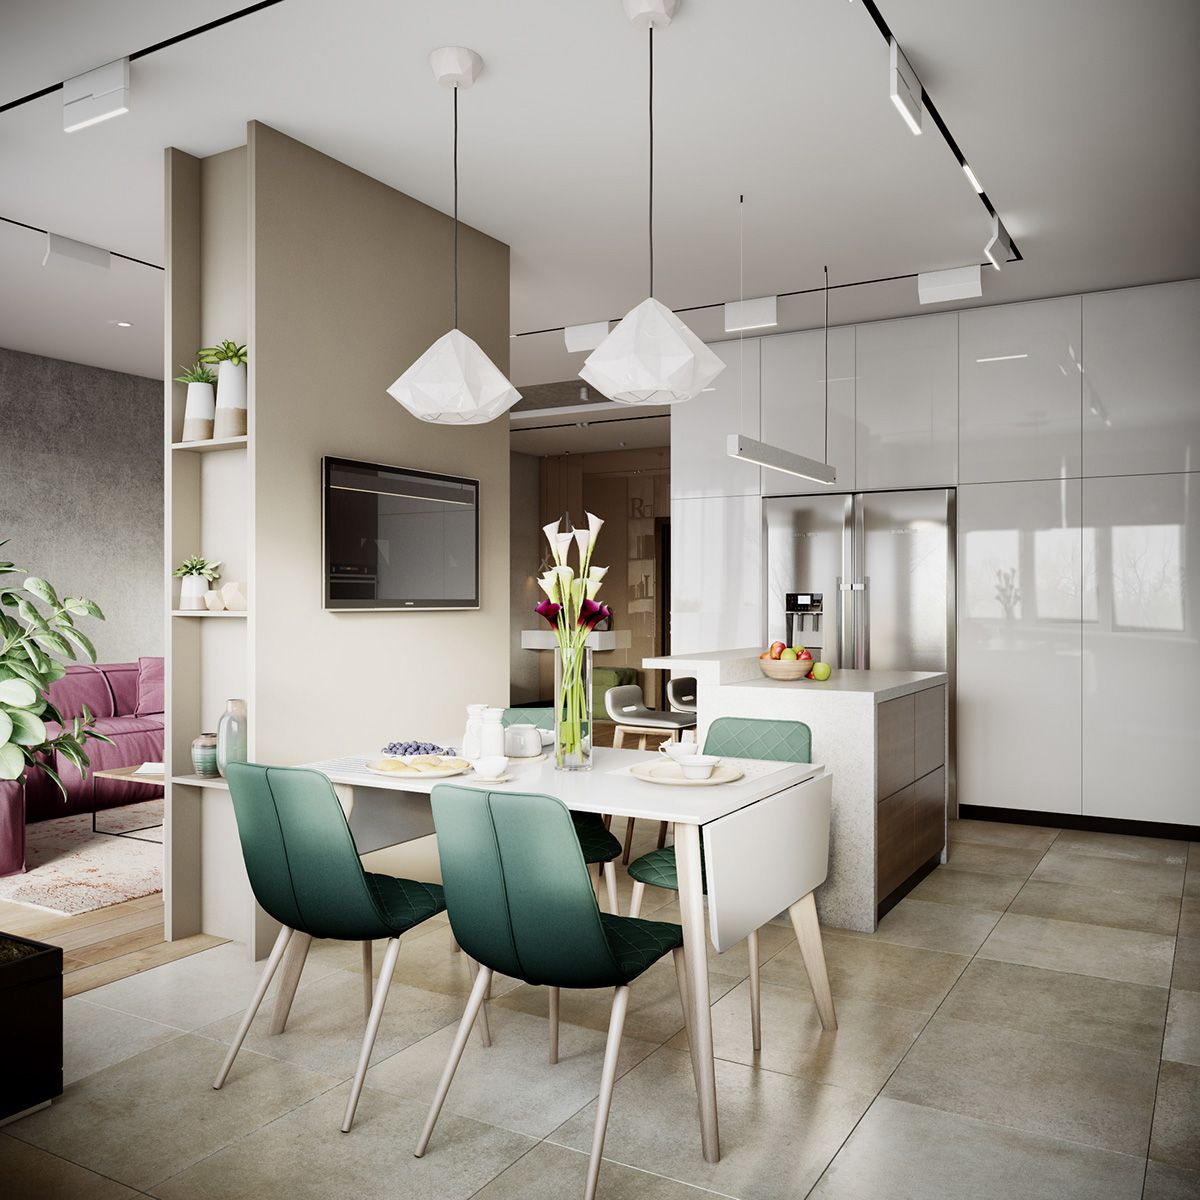 Cocina Y Comedor Diario 3 Modern Apartments With Chic Rooms For The Kids